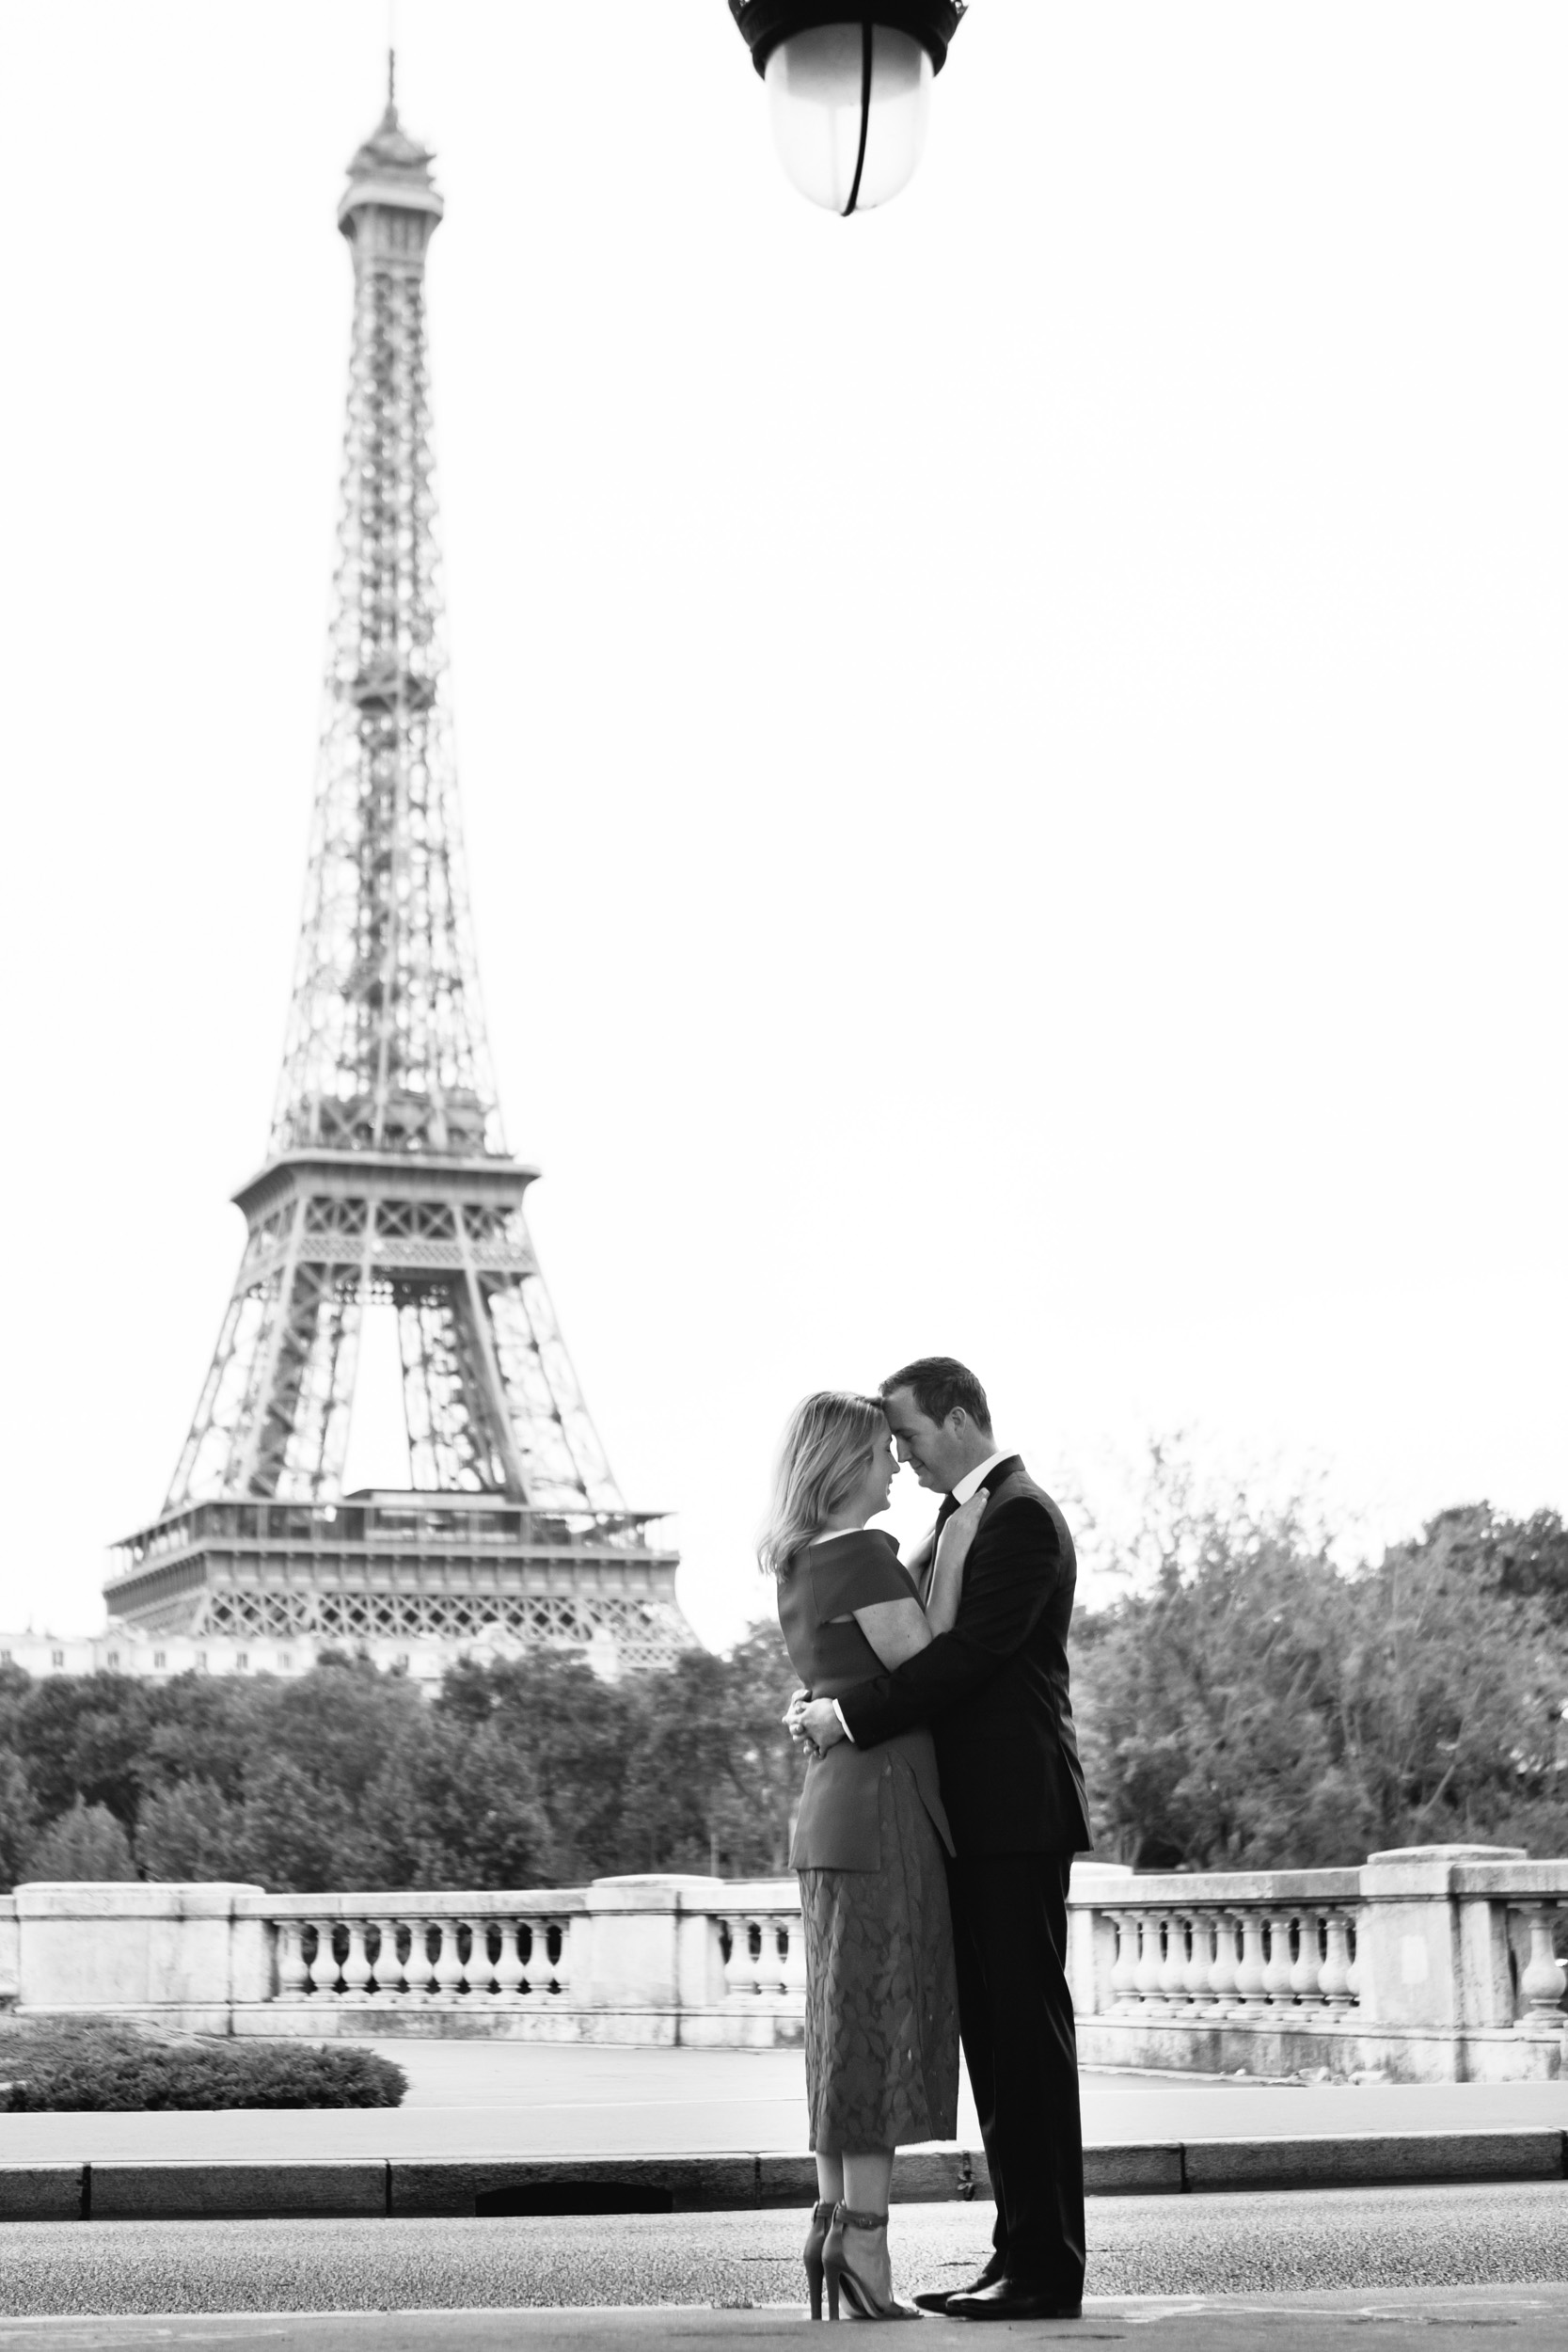 Romantic black and white portrait of a couple at bridge Bir Hakeim with the view of the Eiffel Tower captured by Paris Photographer Federico Guendel www.iheartparis.fr